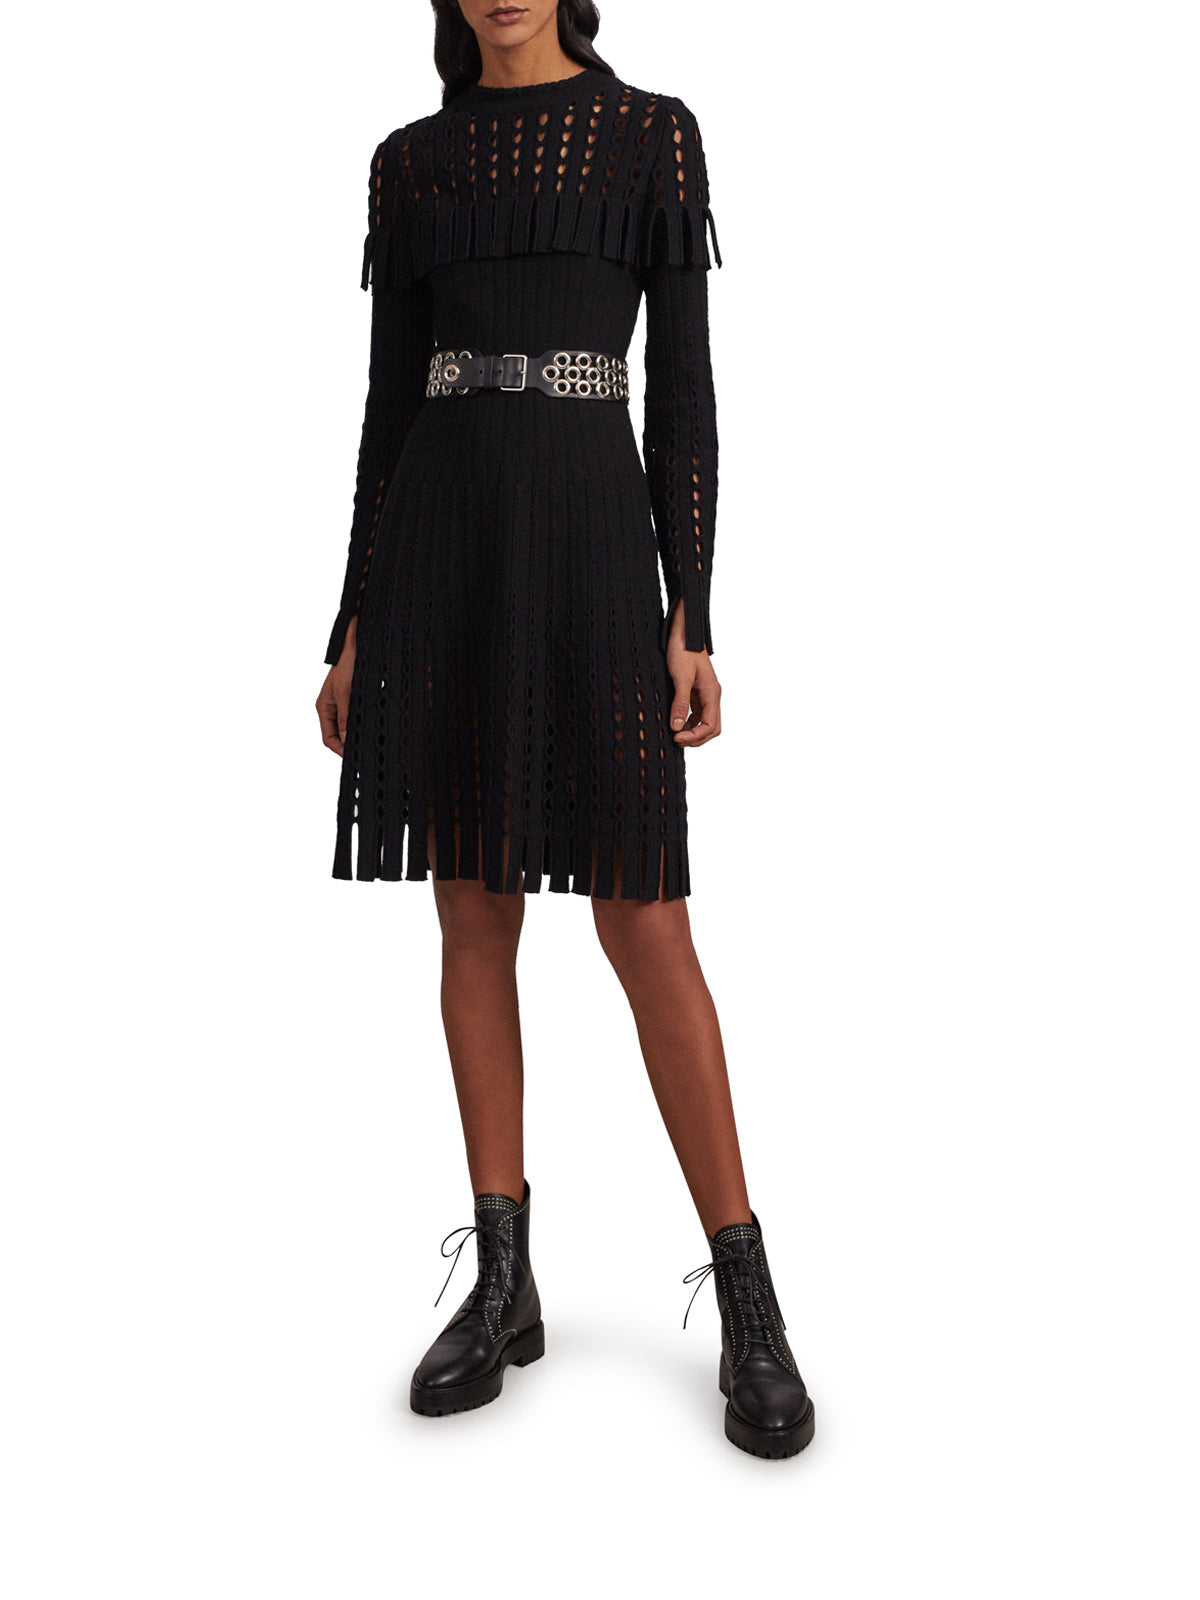 Alaïa Long Sleeved Dress In Perforated Knit In Black